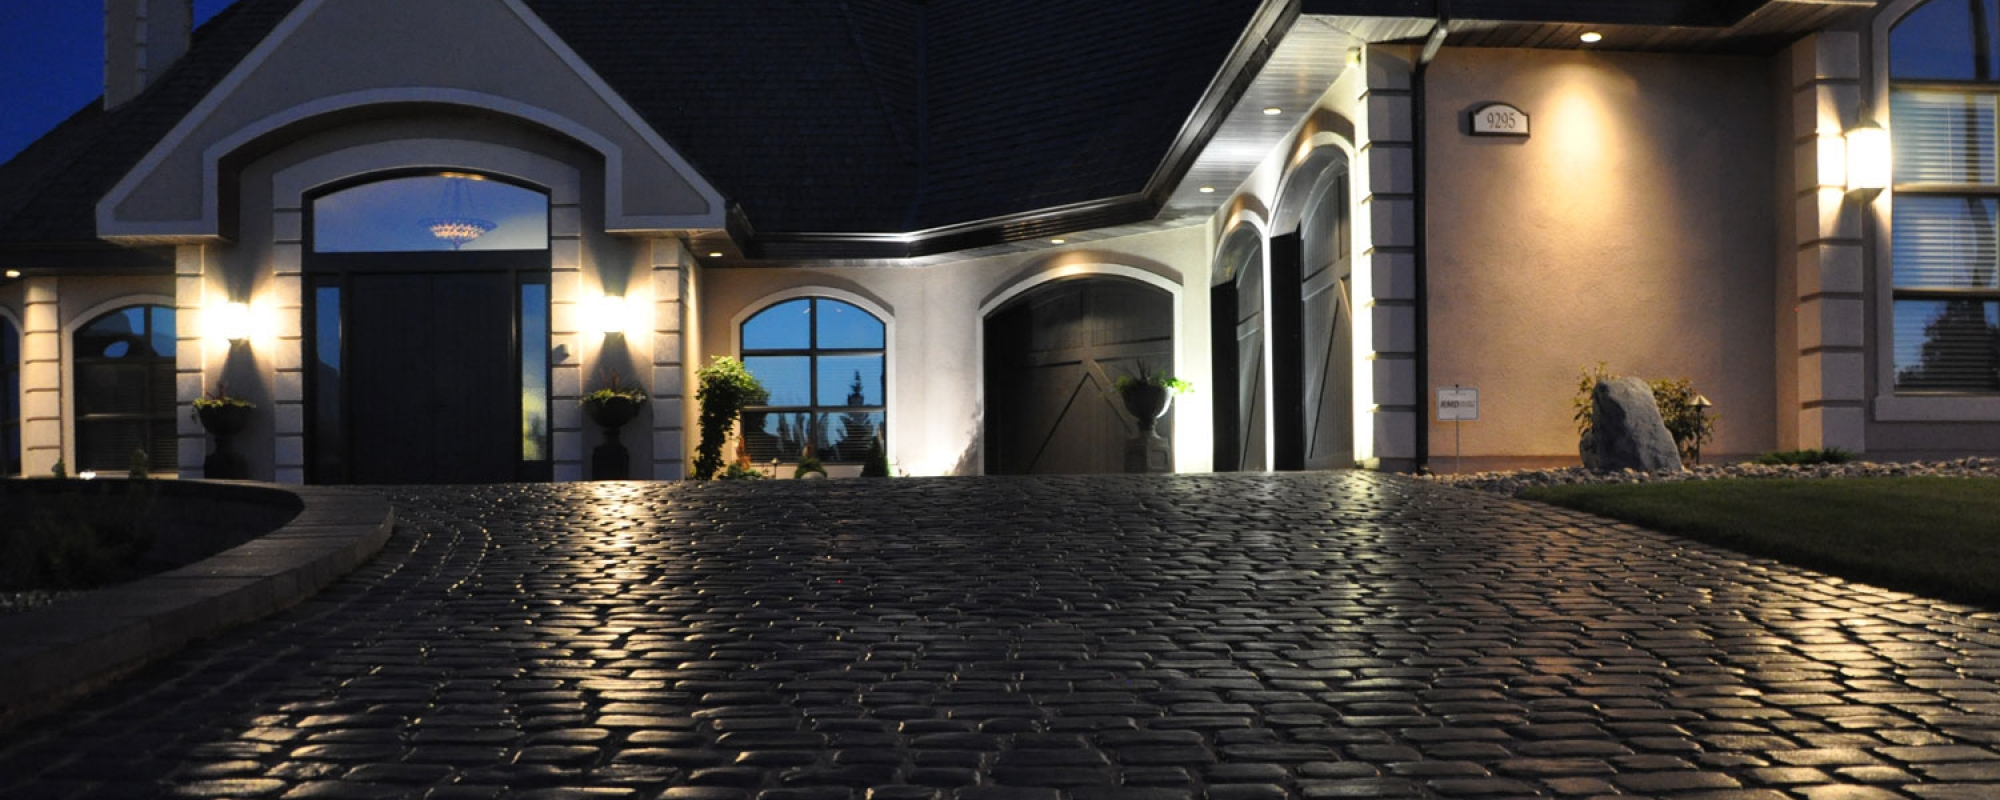 The Amazing Look <br>of Paving Stones